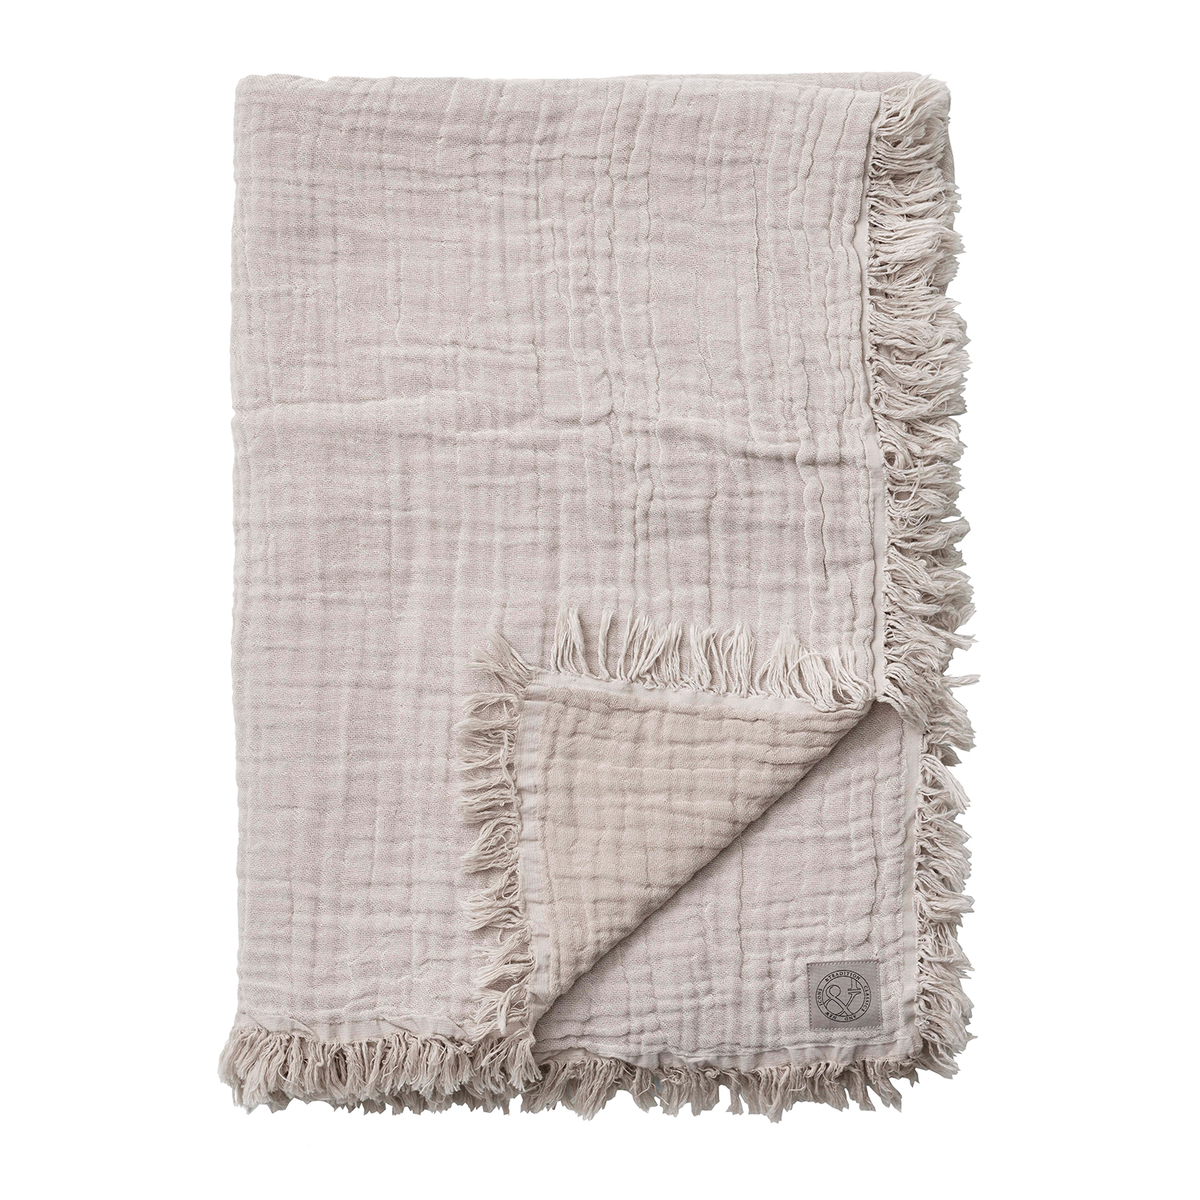 &Tradition Collect SC32 throw, 140 x 210 cm, cloud - milk from &Tradition